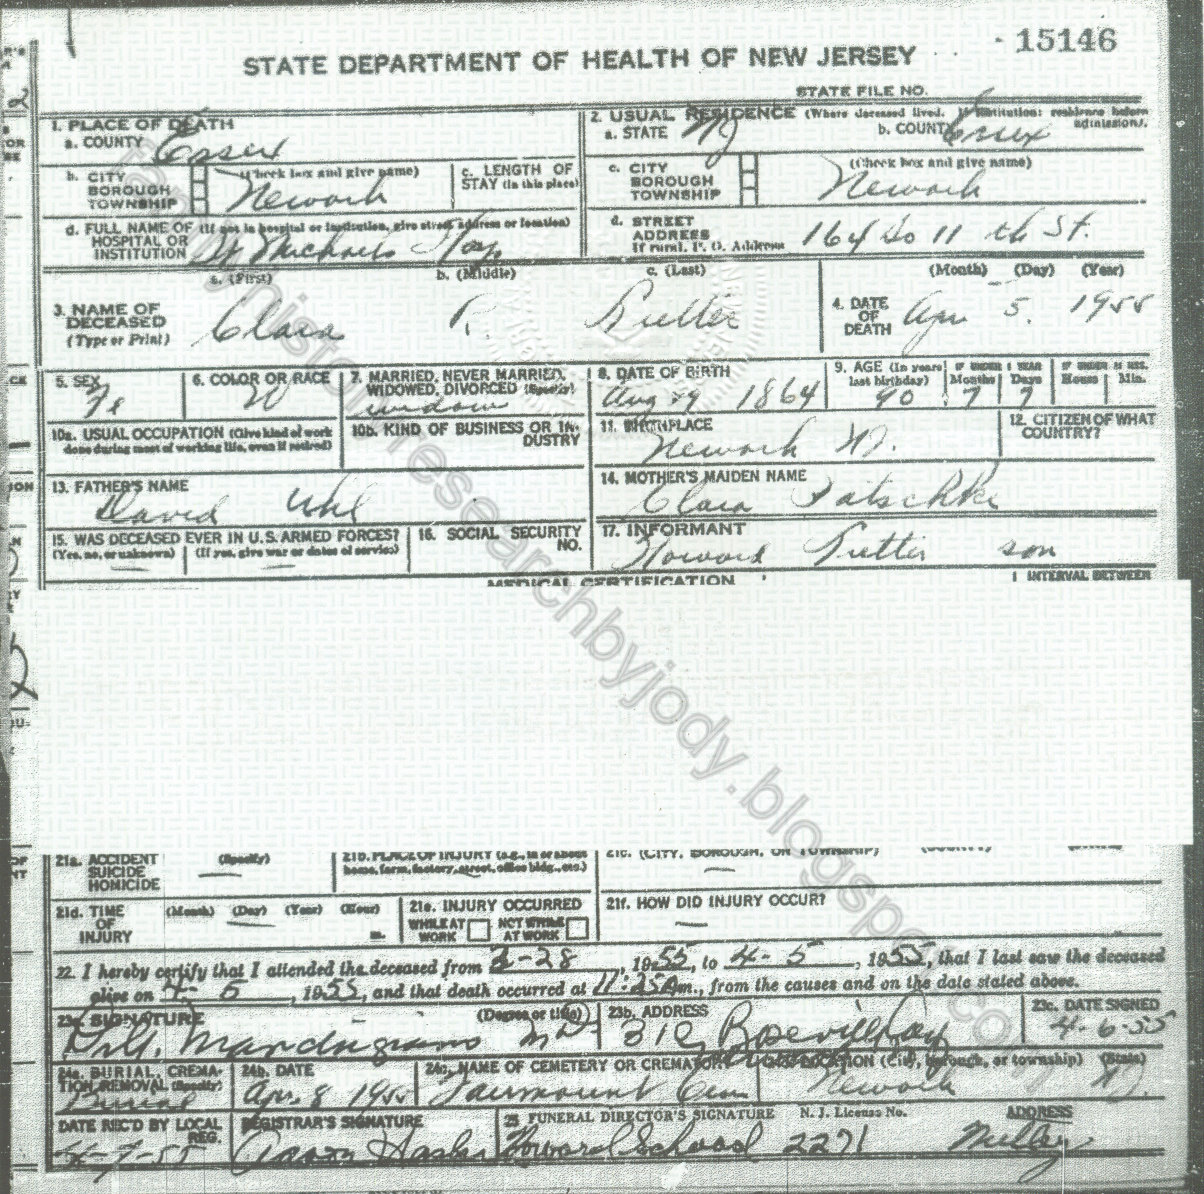 Family history research by jody new jersey death certificates death certificate for clara lutter nee uhl died 5 april 1955 in newark obtained through the department of health and senior services xflitez Choice Image